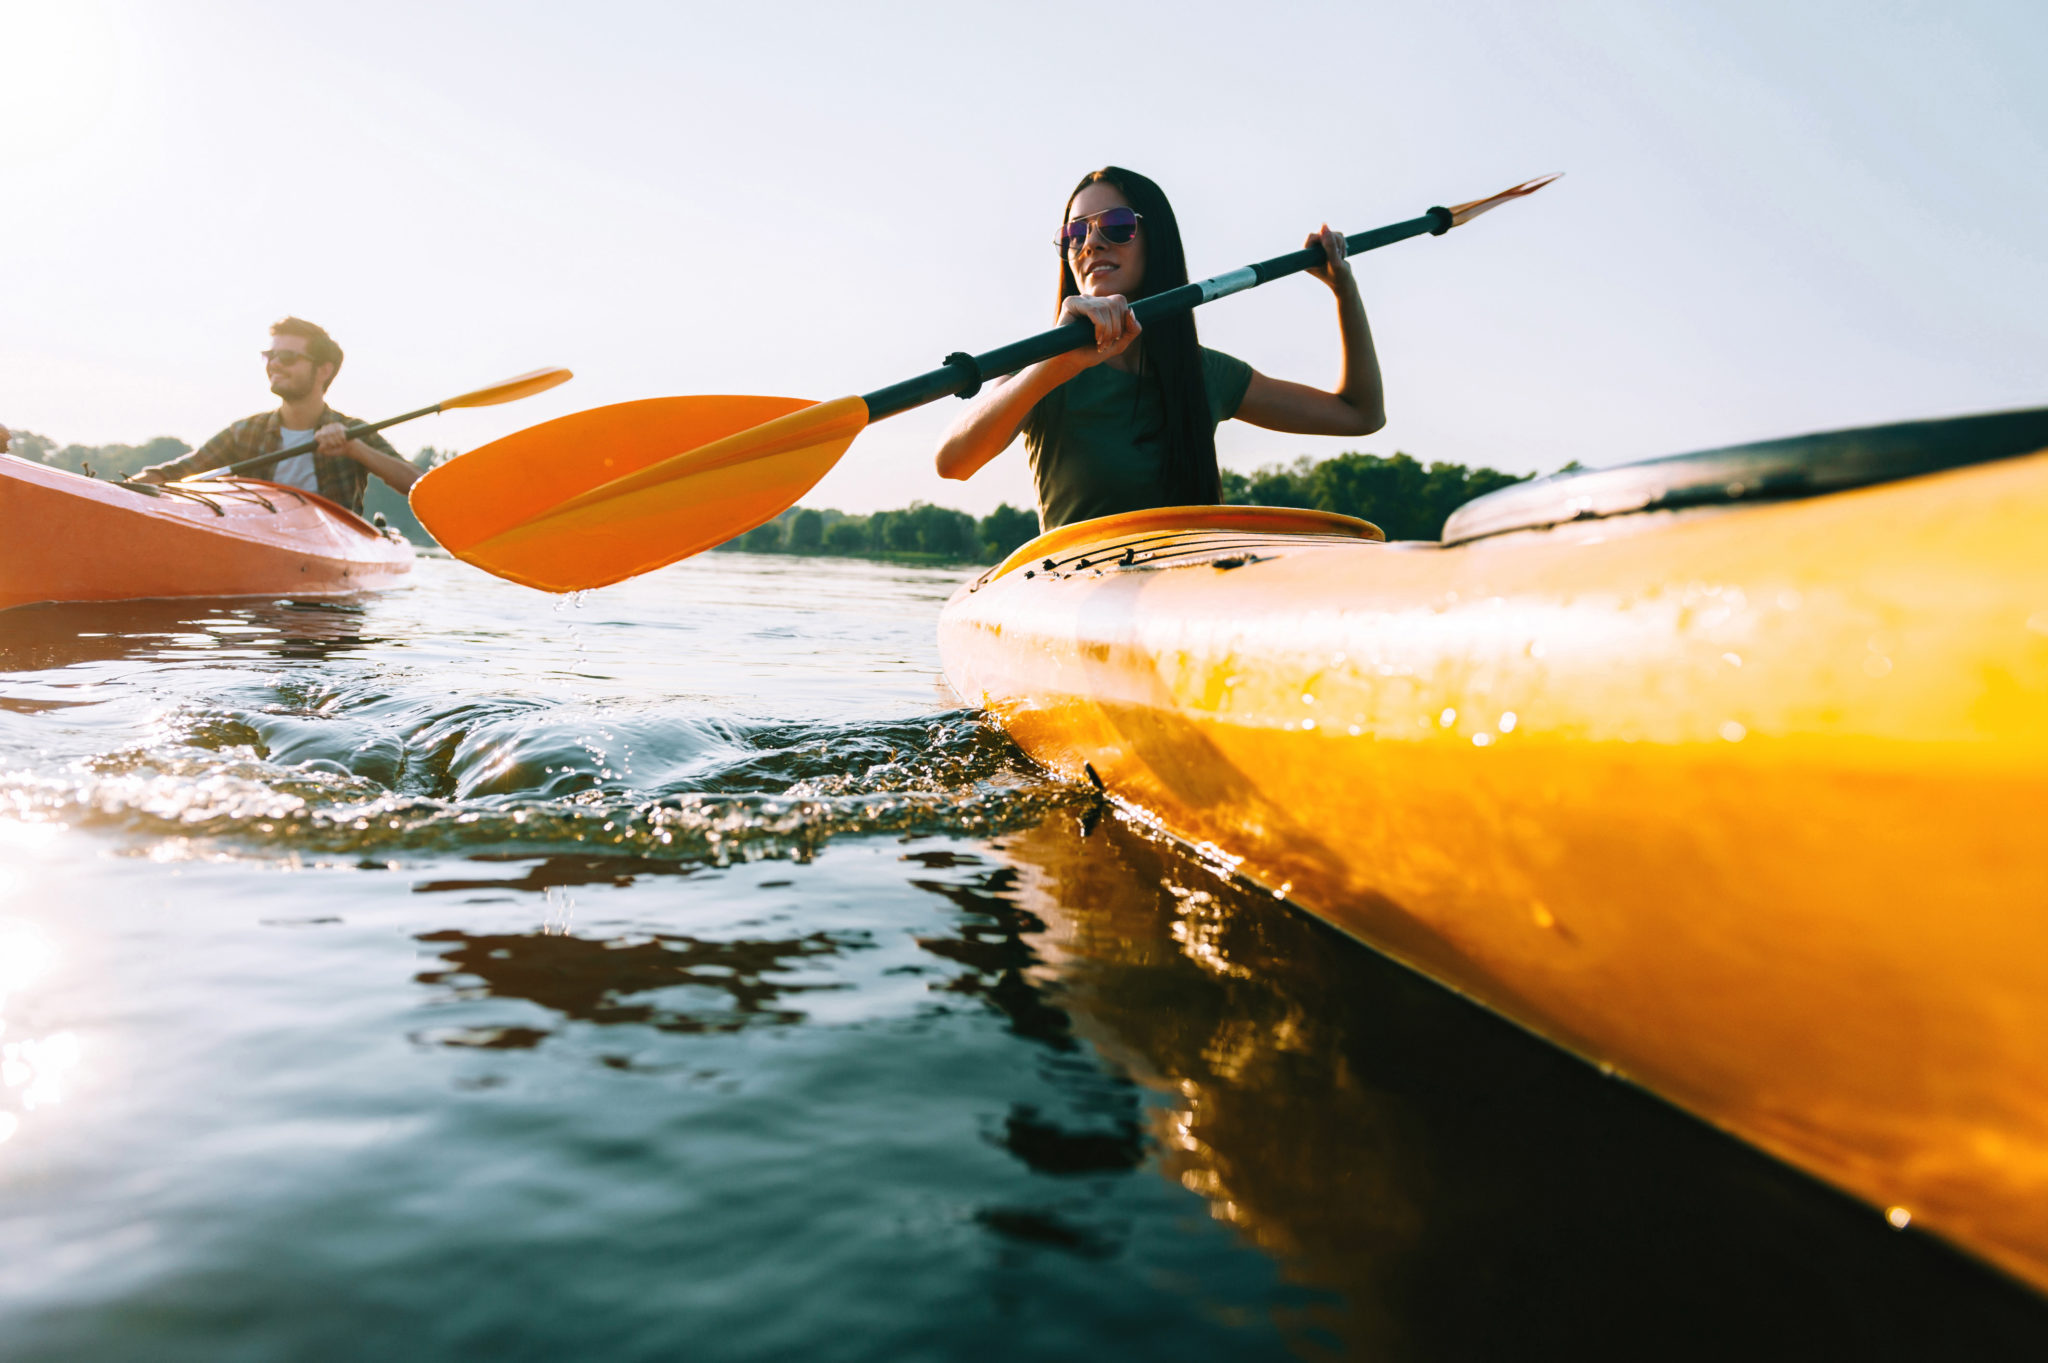 Couple kayaking. Low angle view of beautiful young couple kayaking on lake together and smiling